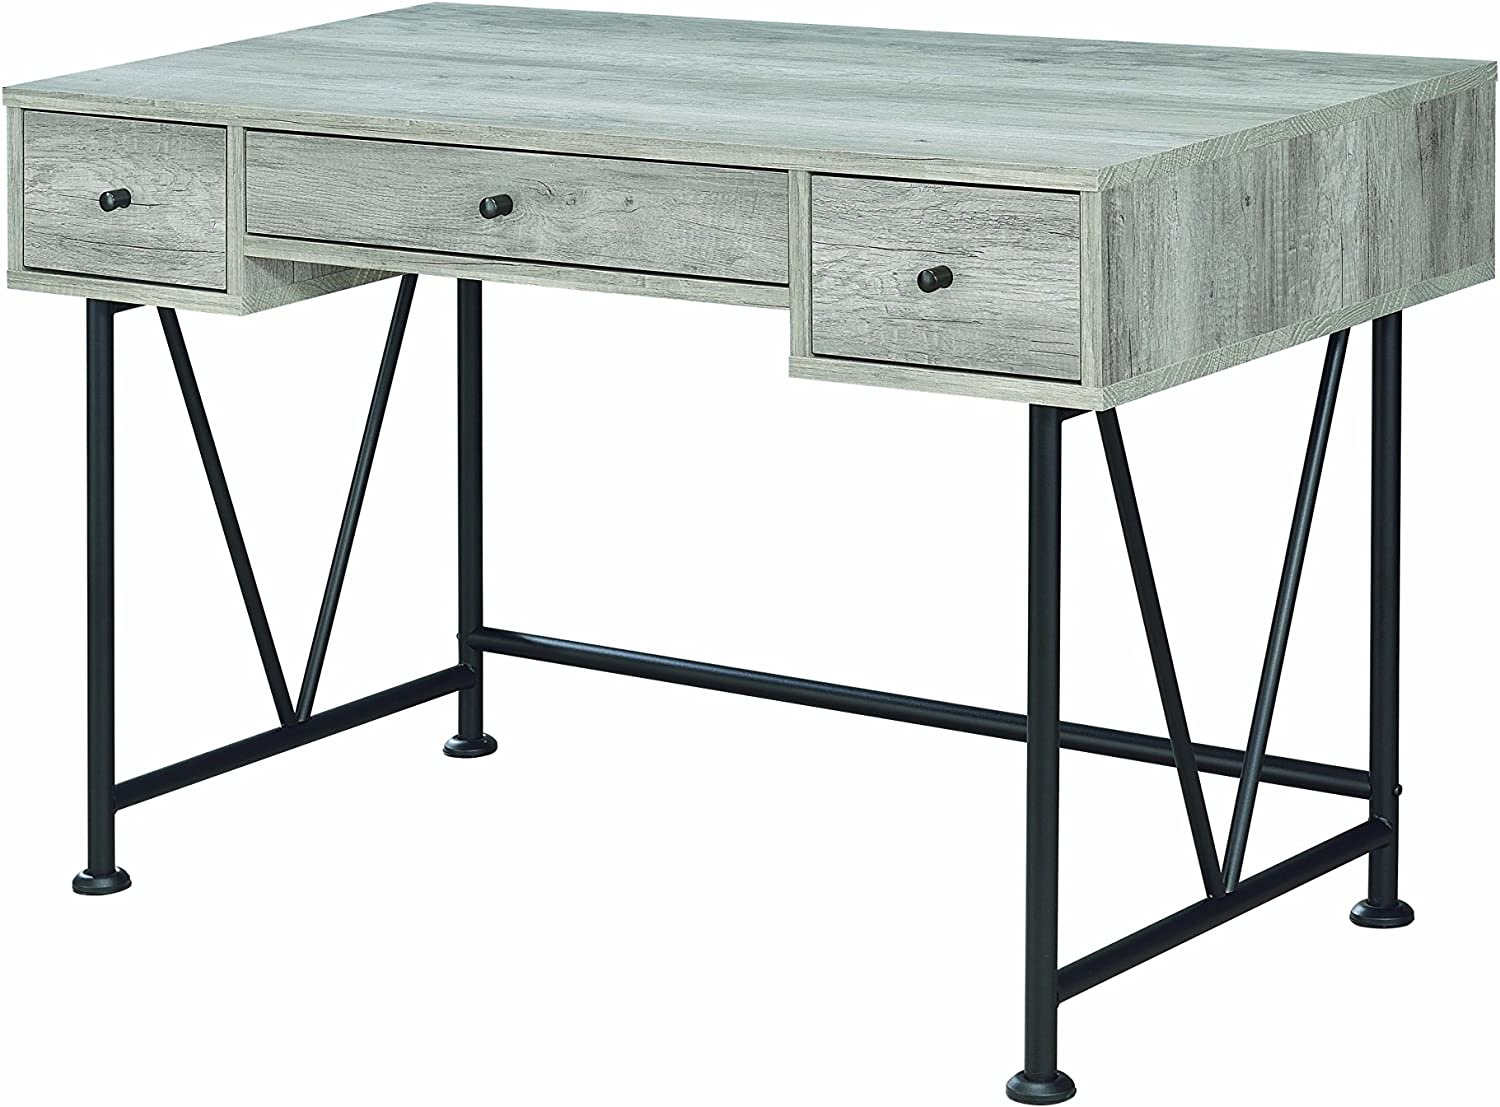 Coaster CO-801549 Writing Desk, Grey Driftwood